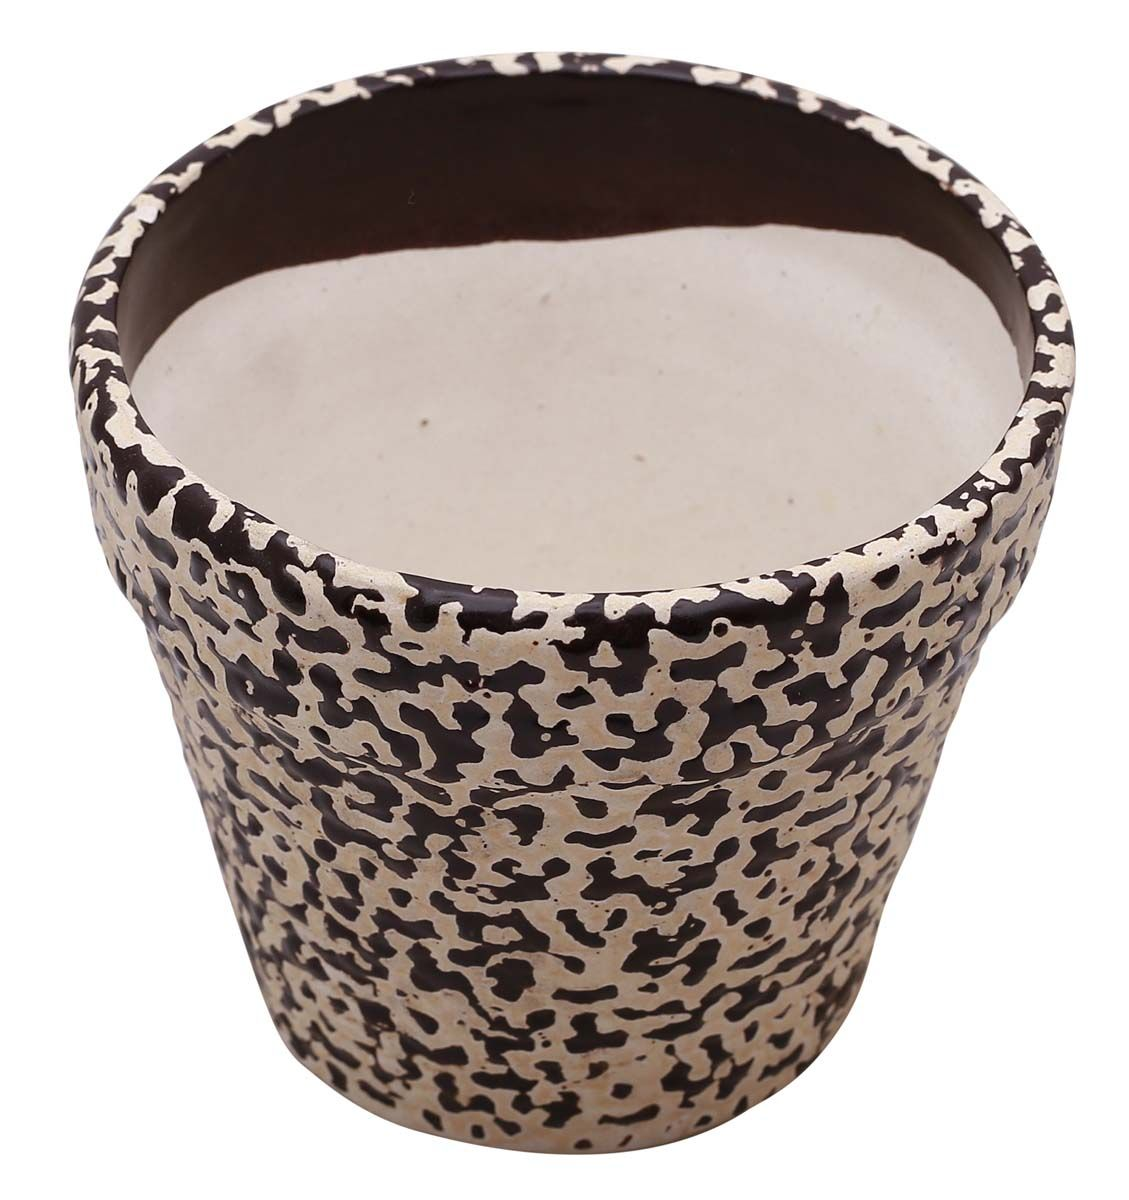 Bulk Wholesale Hand Painted Beige Dark Brown Ceramic Planter